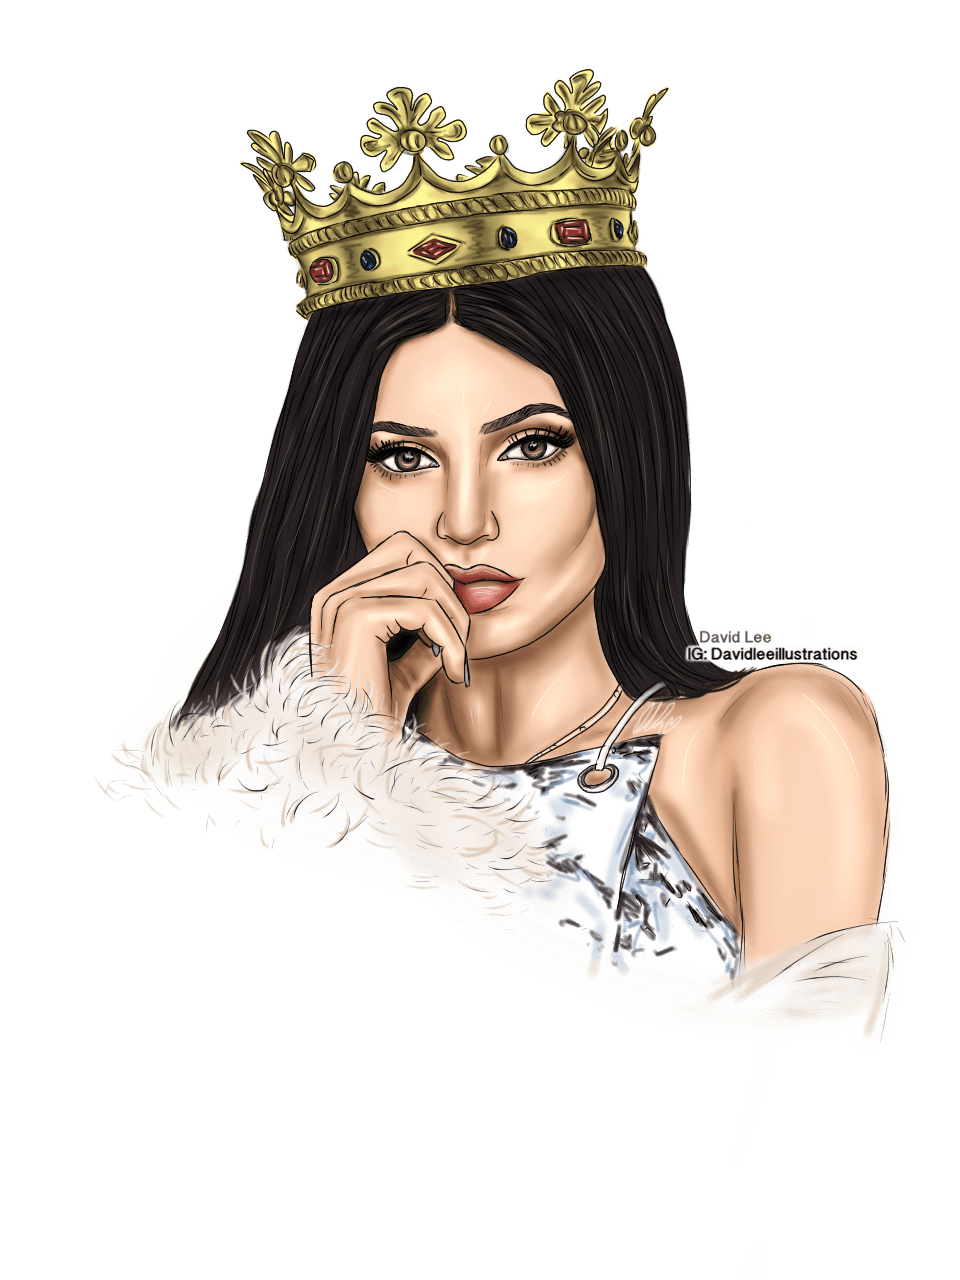 Kylie Jenner Iphone Wallpapers Top Free Kylie Jenner Iphone Backgrounds Wallpaperaccess